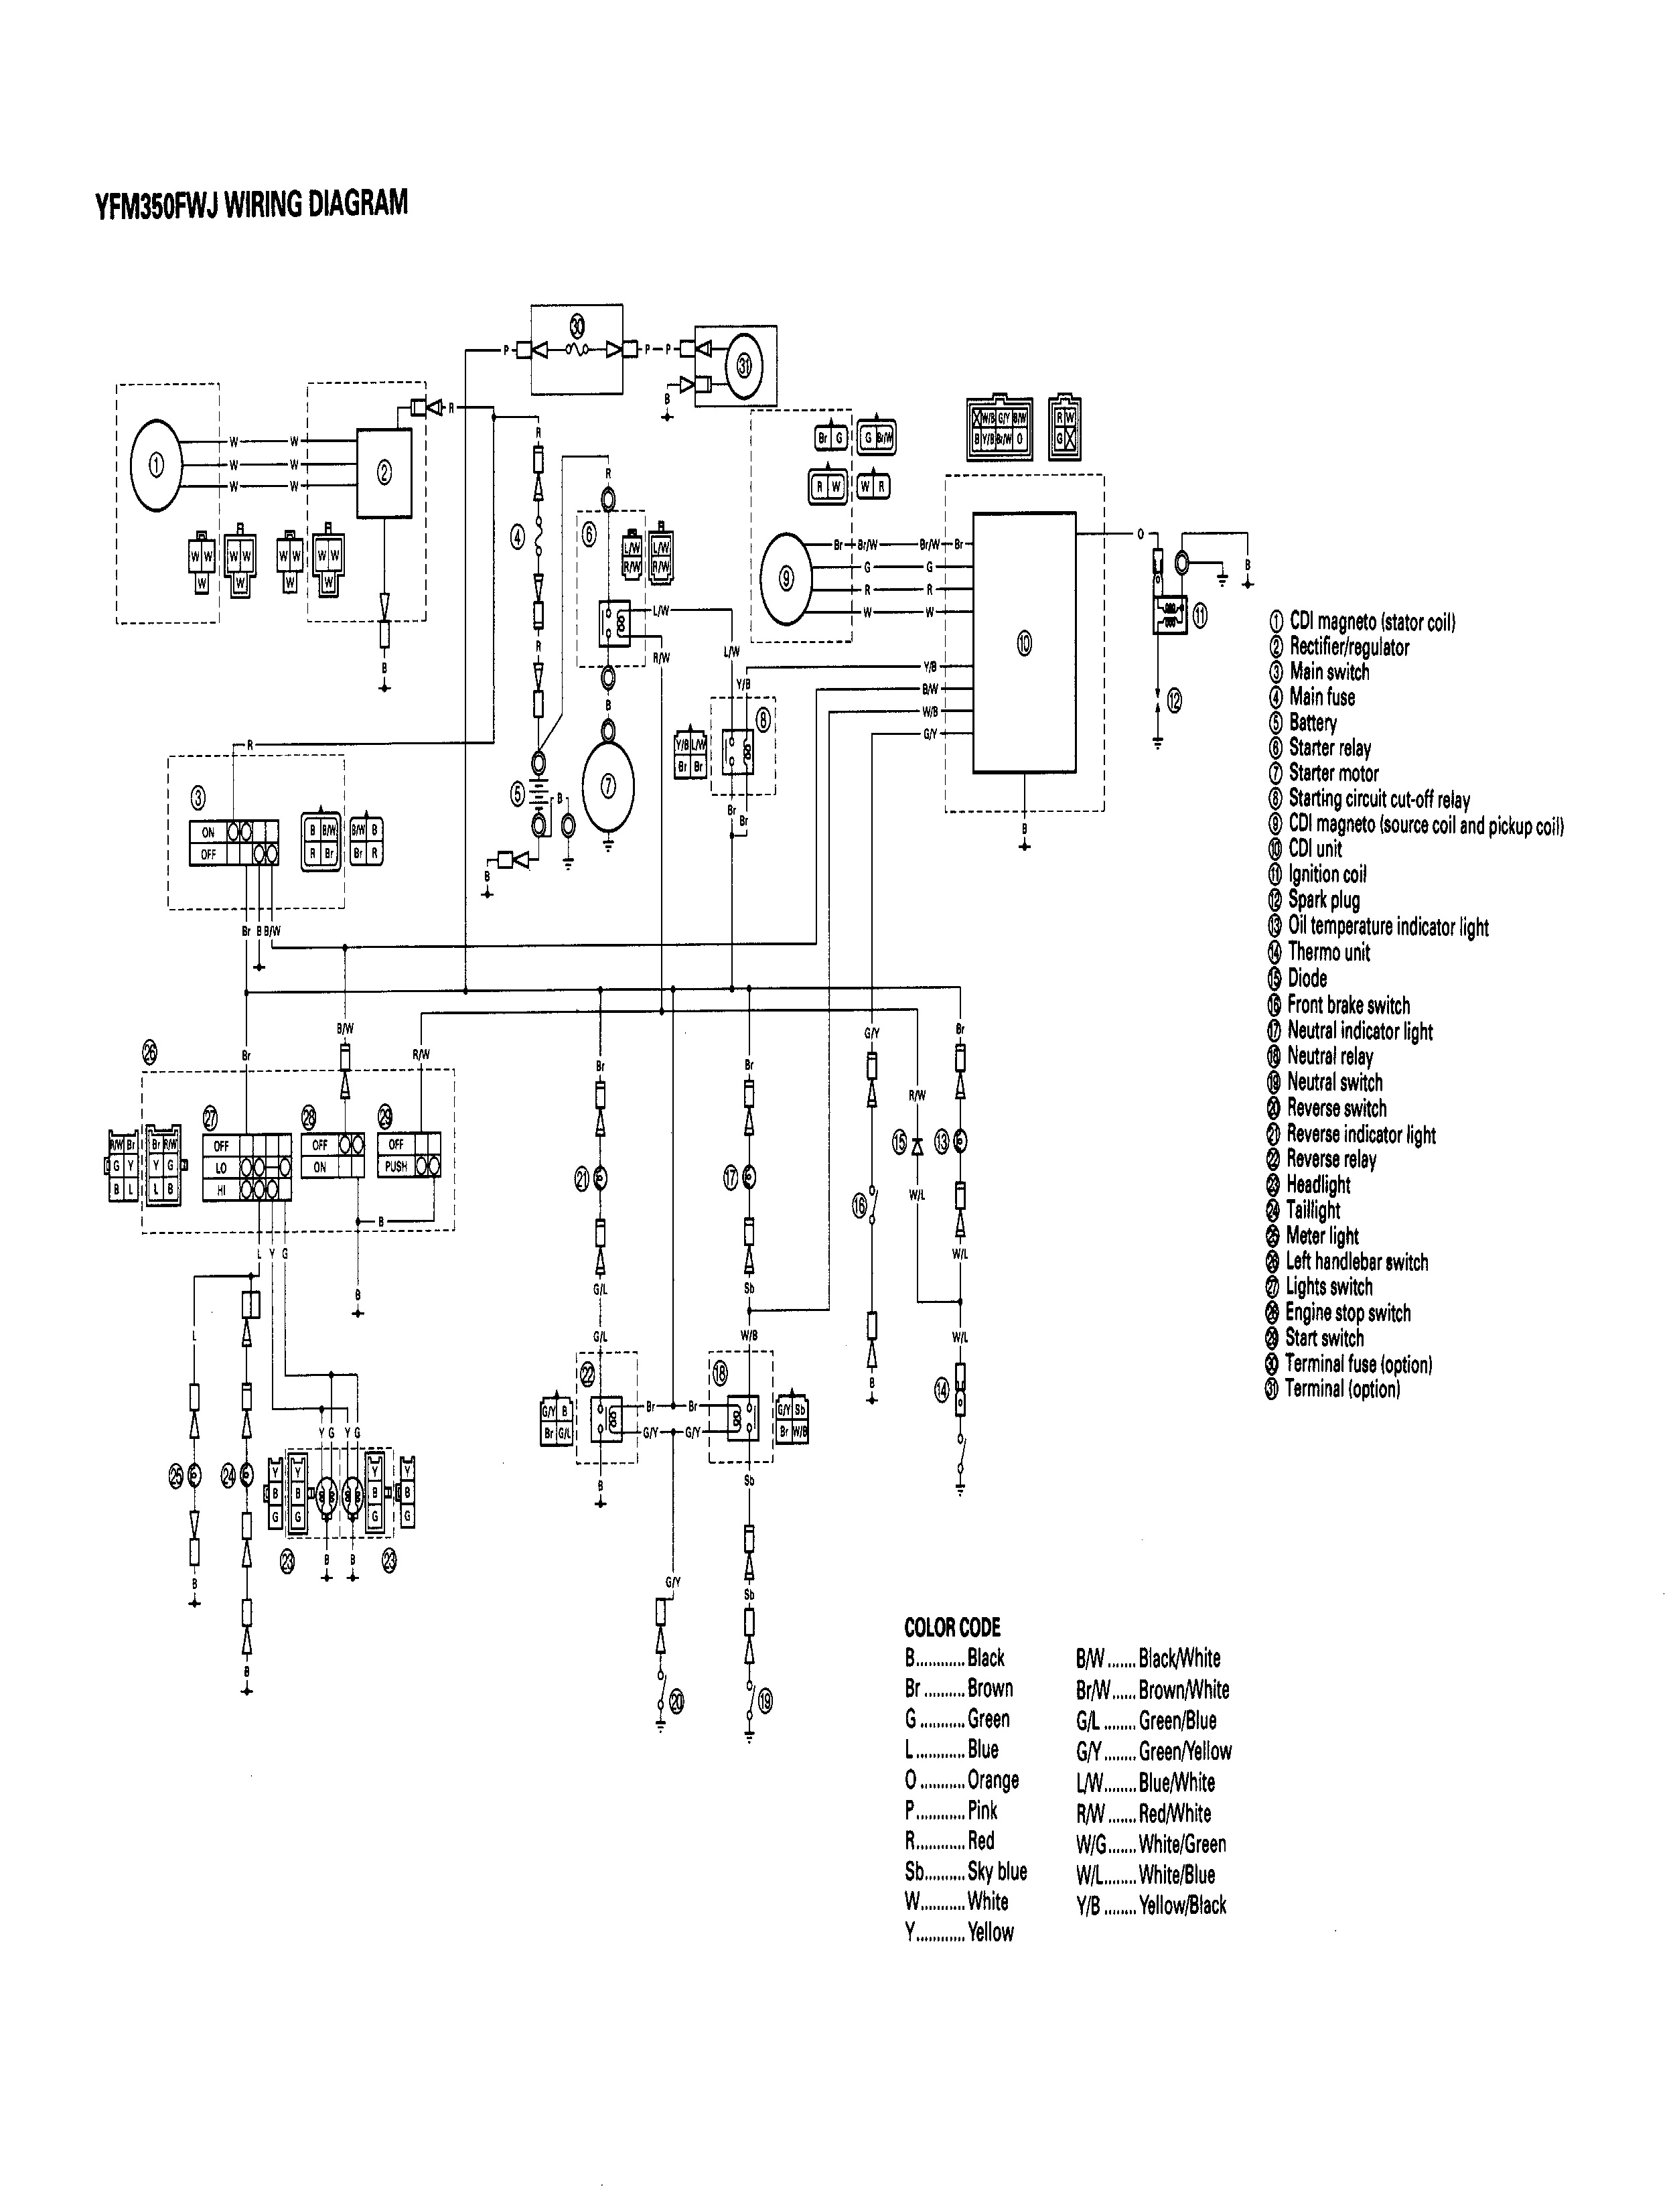 88 yamaha warrior wiring diagram - schematics and wiring diagrams, Wiring diagram